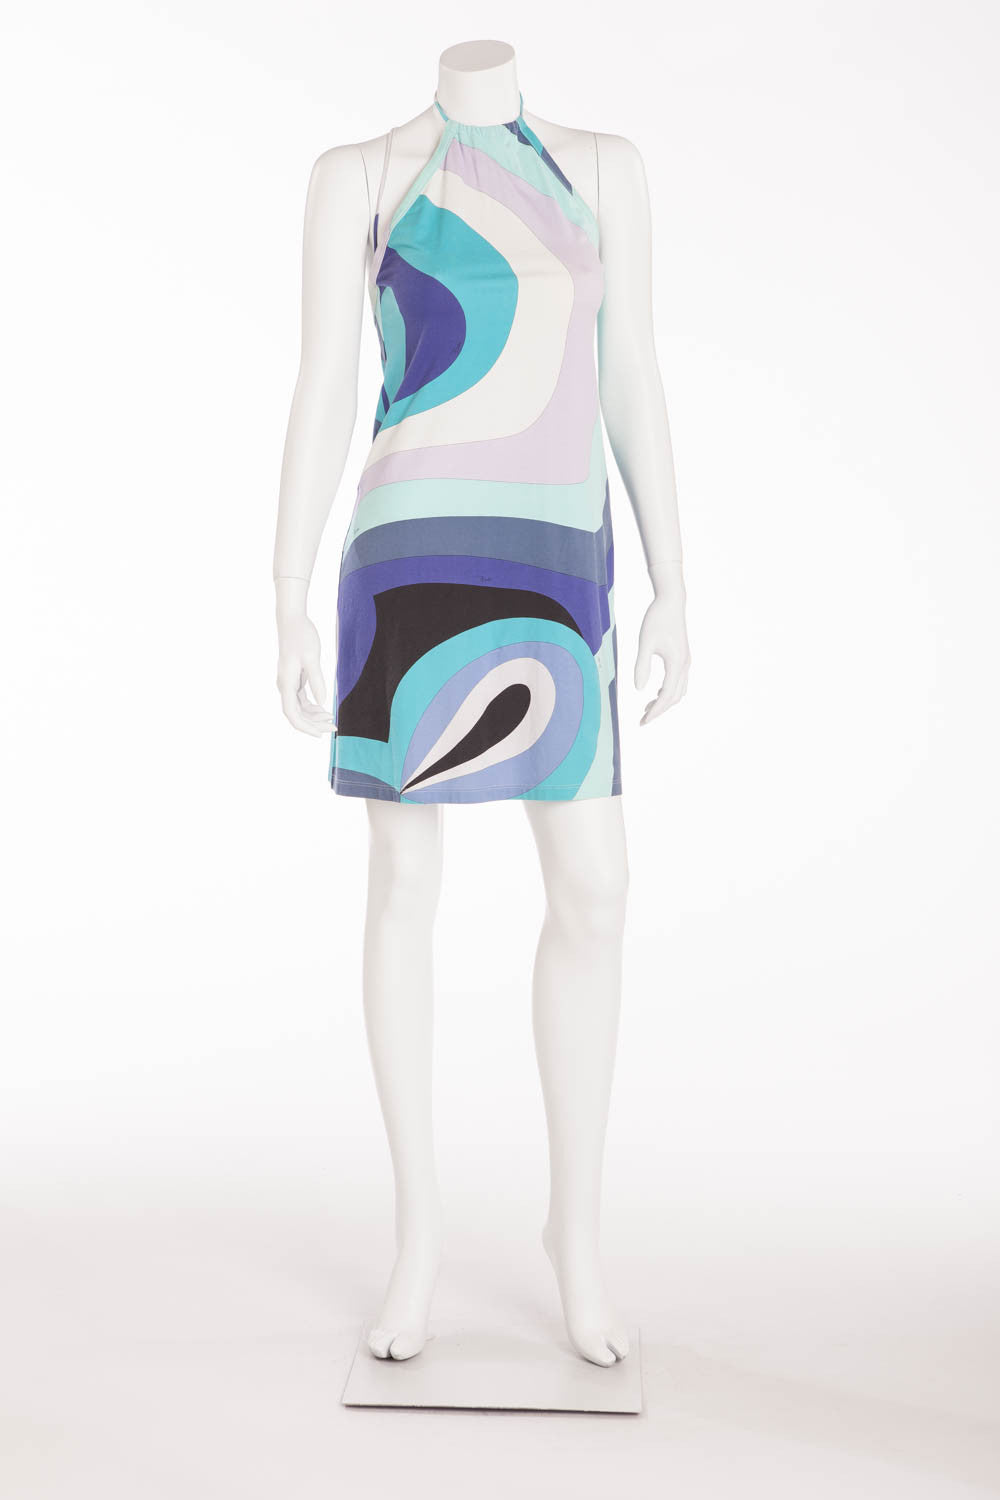 Emillio Pucci - Multi Color Halter Neck Dress